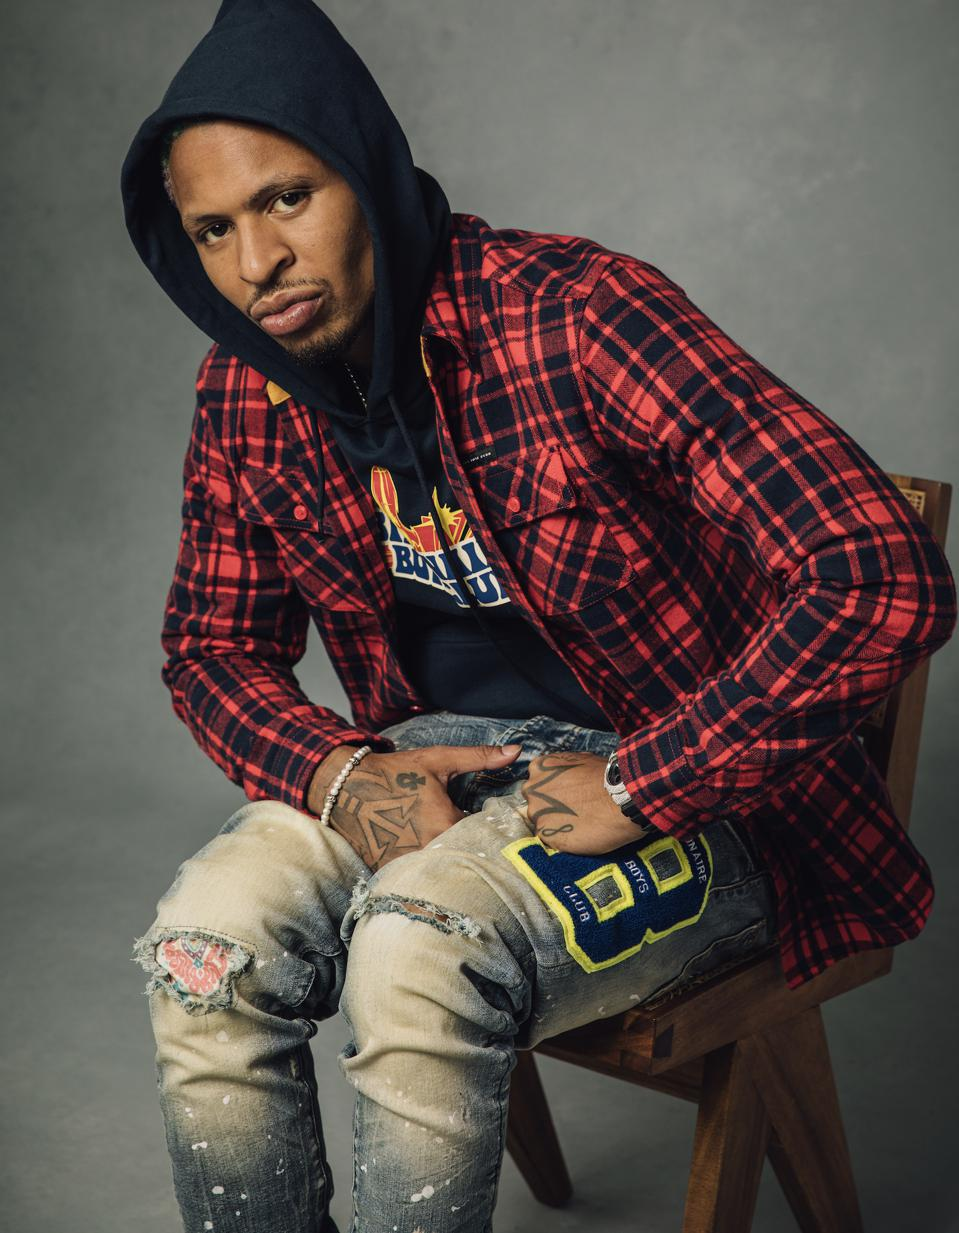 Billionaire Boys Club and ICECREAM are streetwear clothing and accessory brands created in 2003 by Pharrell Williams and Nigo.